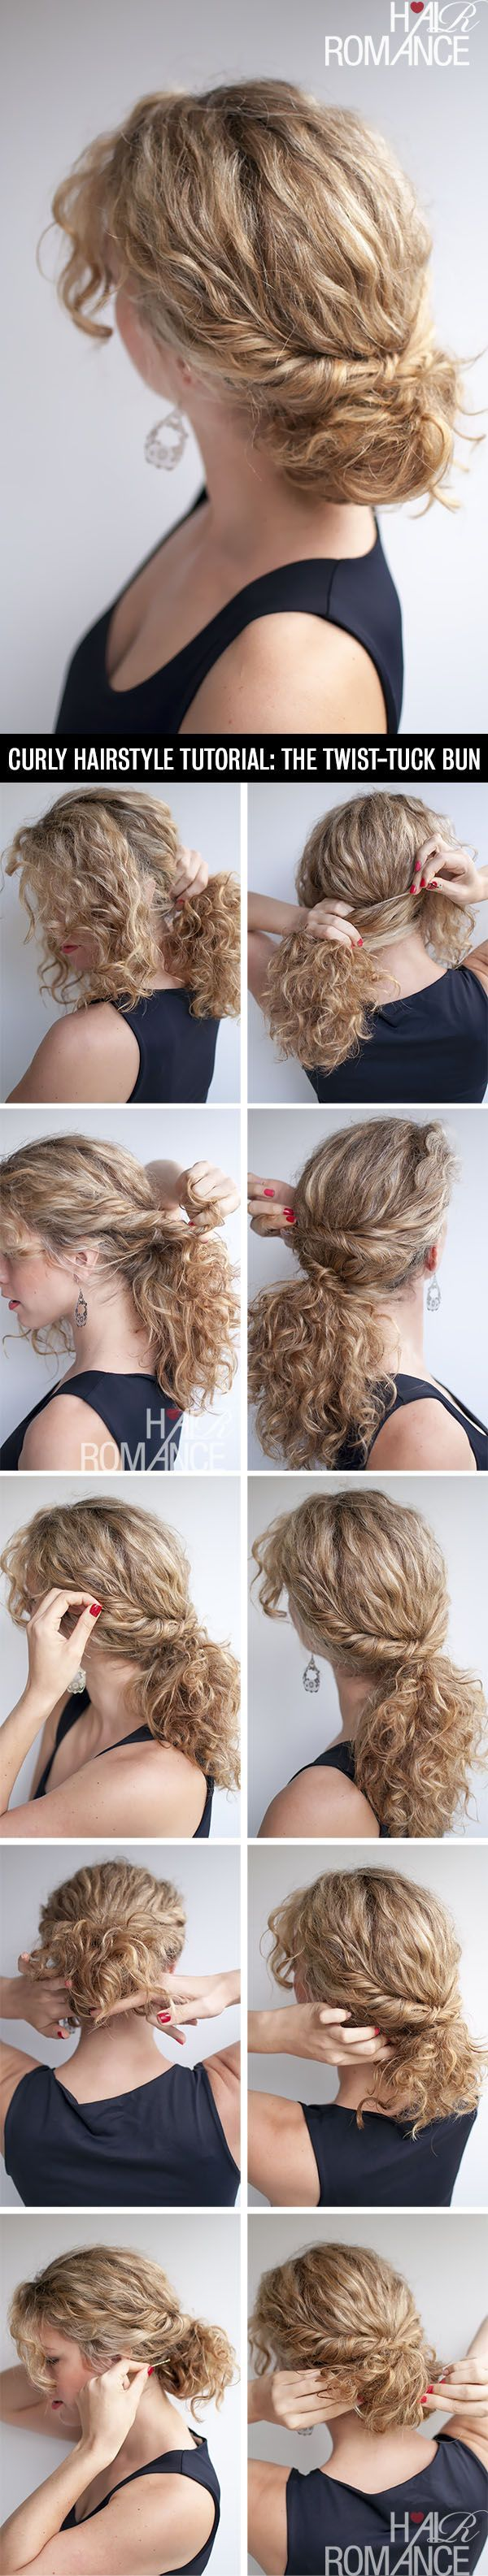 Hair Romance – curly hairstyle tutorial – the twist-tuck bun